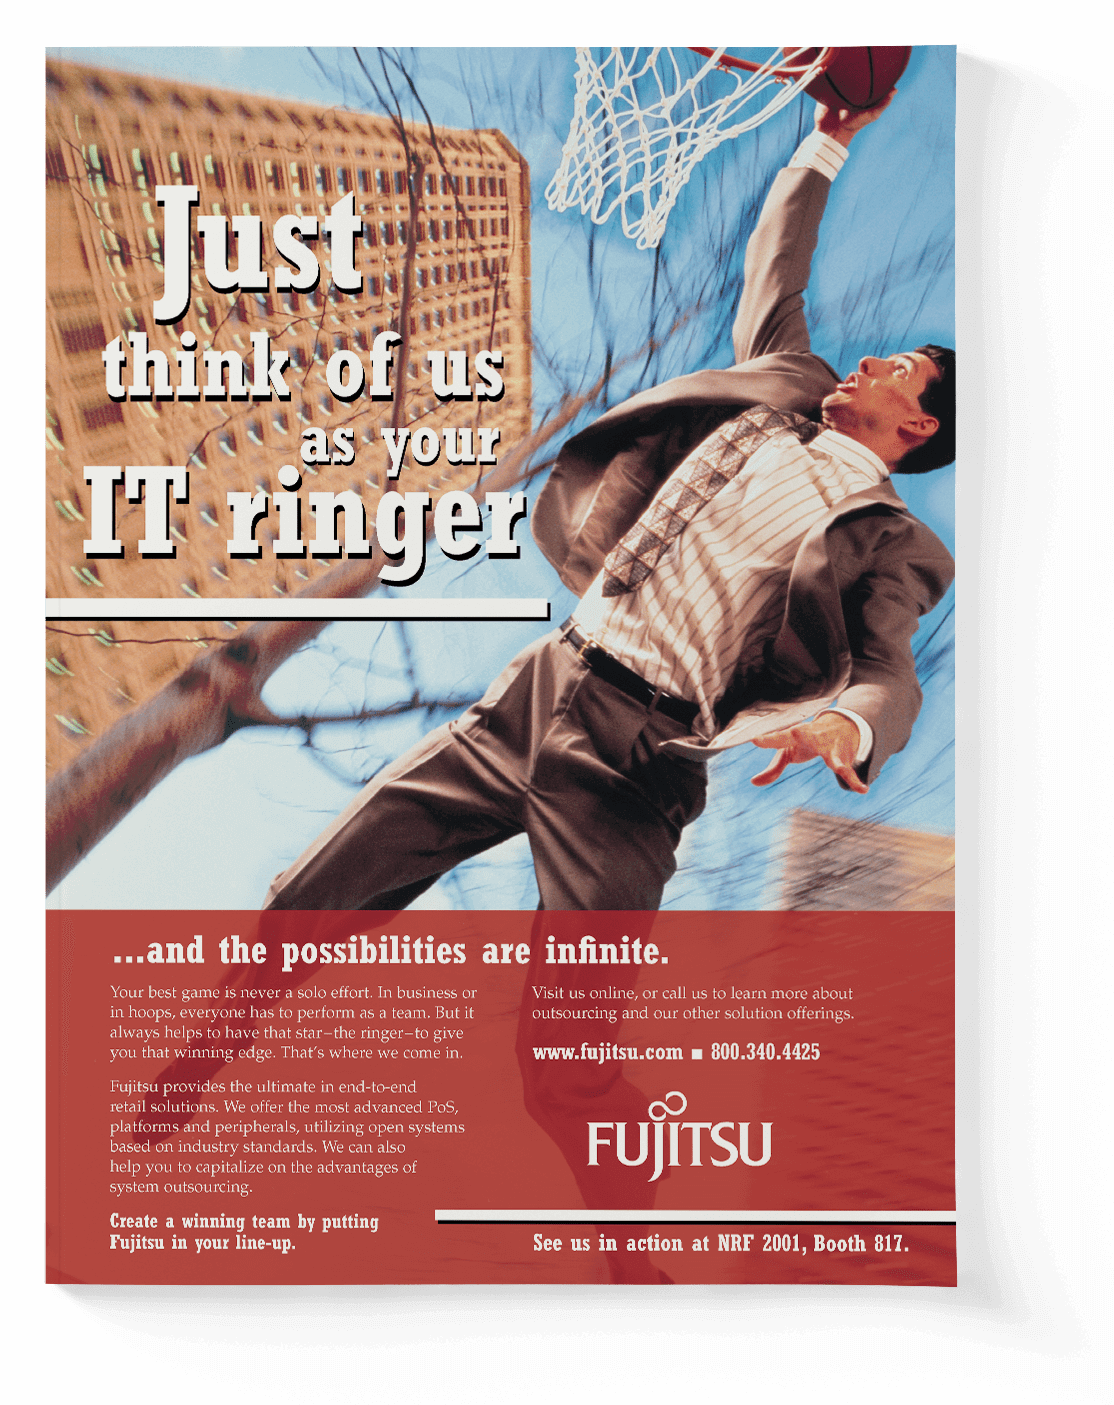 Fujitsu magazine advertisement